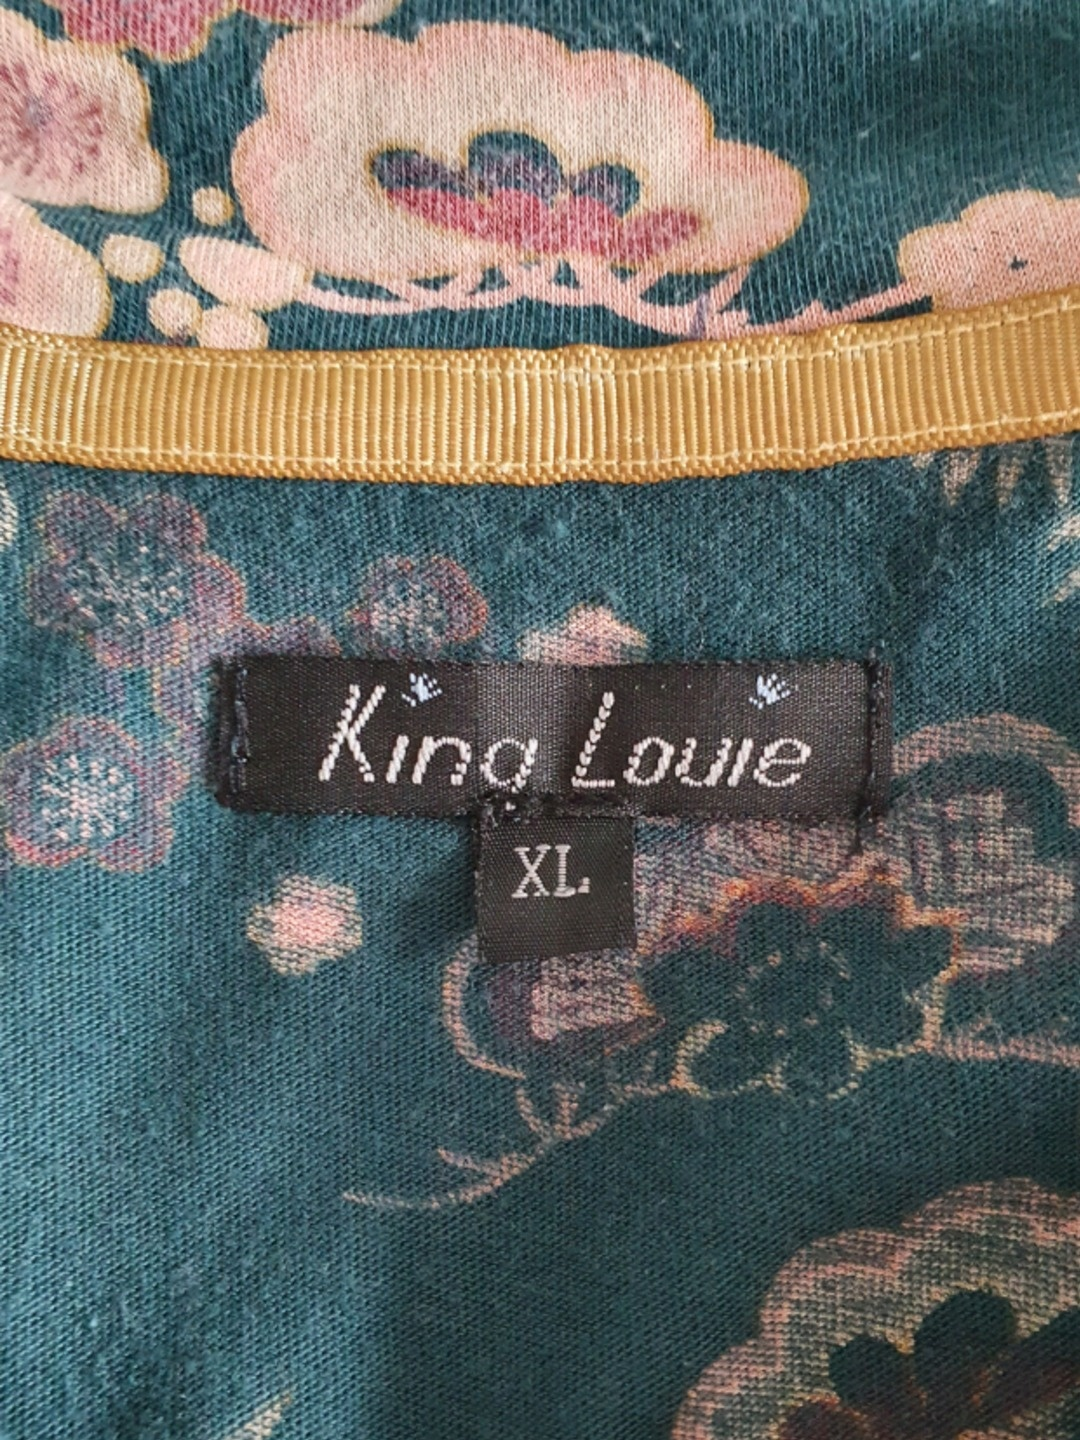 Women's jumpers & cardigans - KING LOUIE photo 4